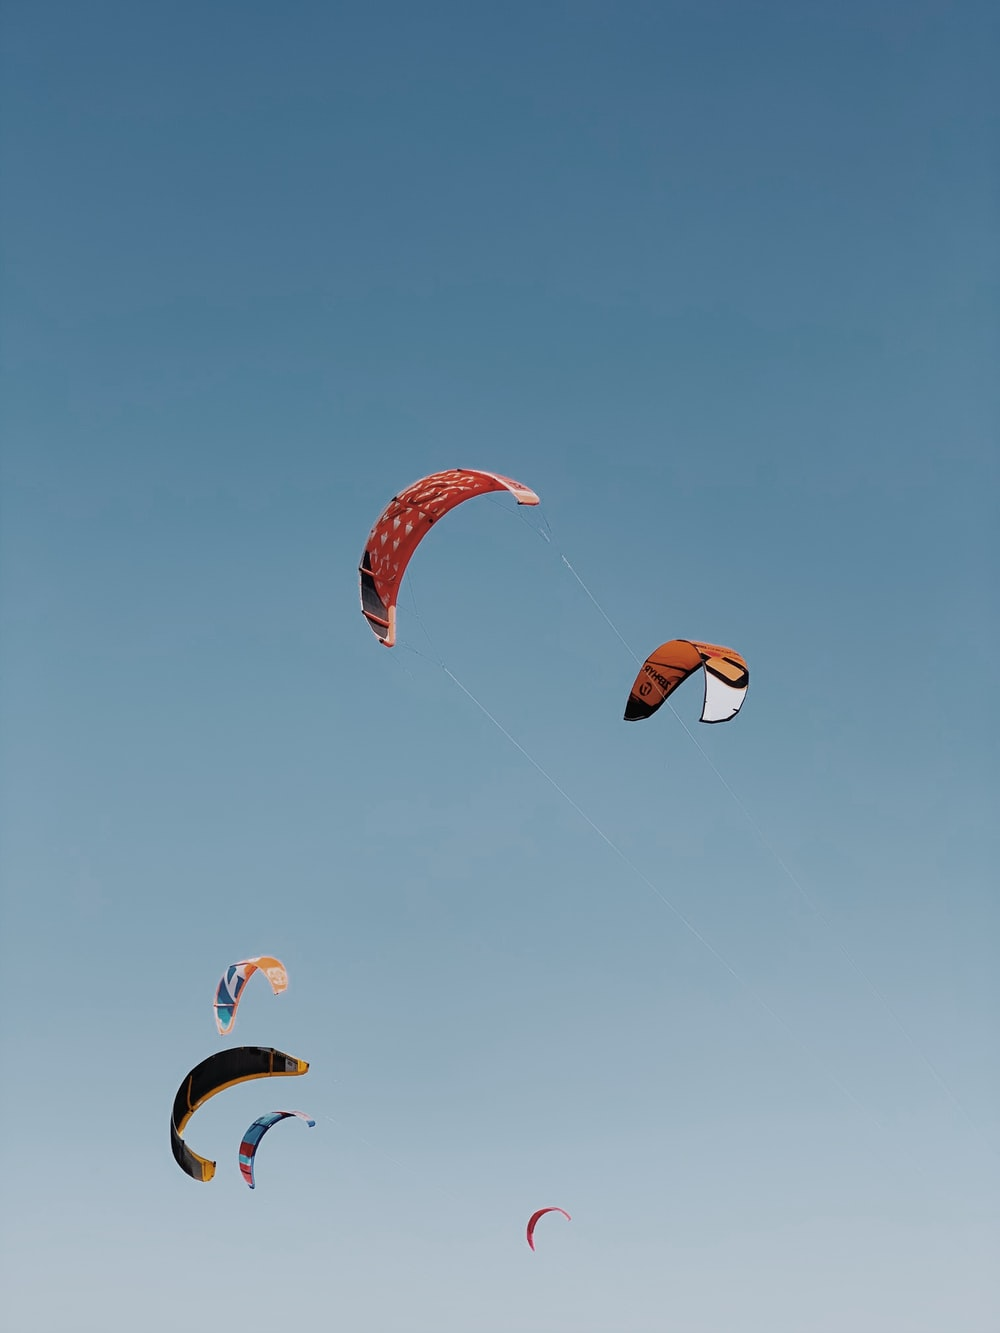 people in parachute under blue sky during daytime